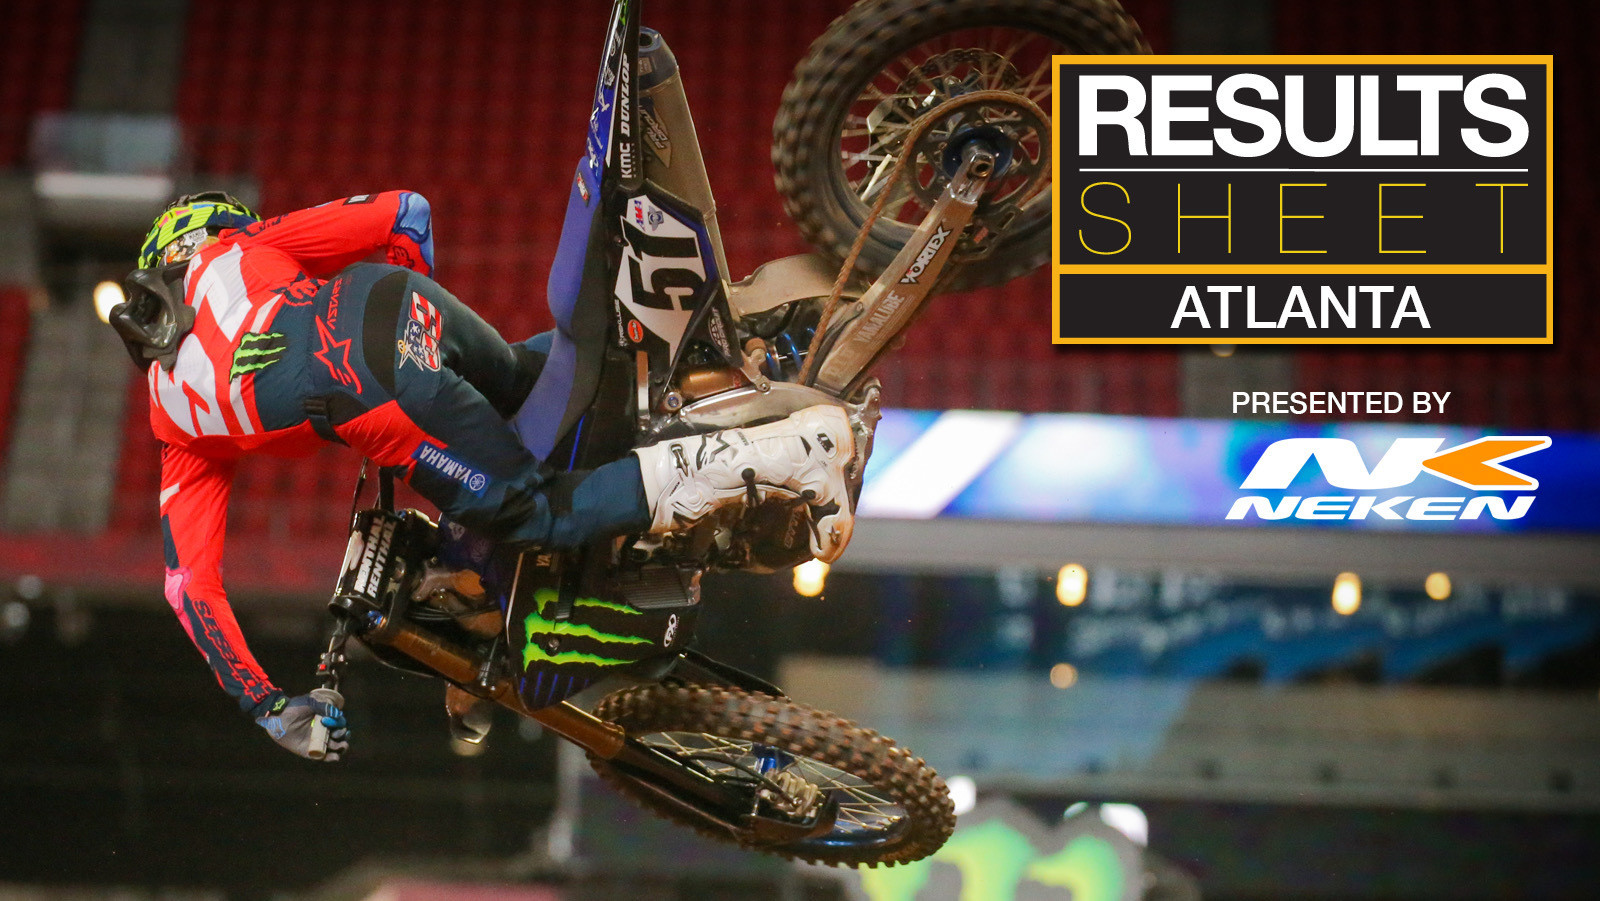 Results Sheet: 2020 Atlanta Supercross